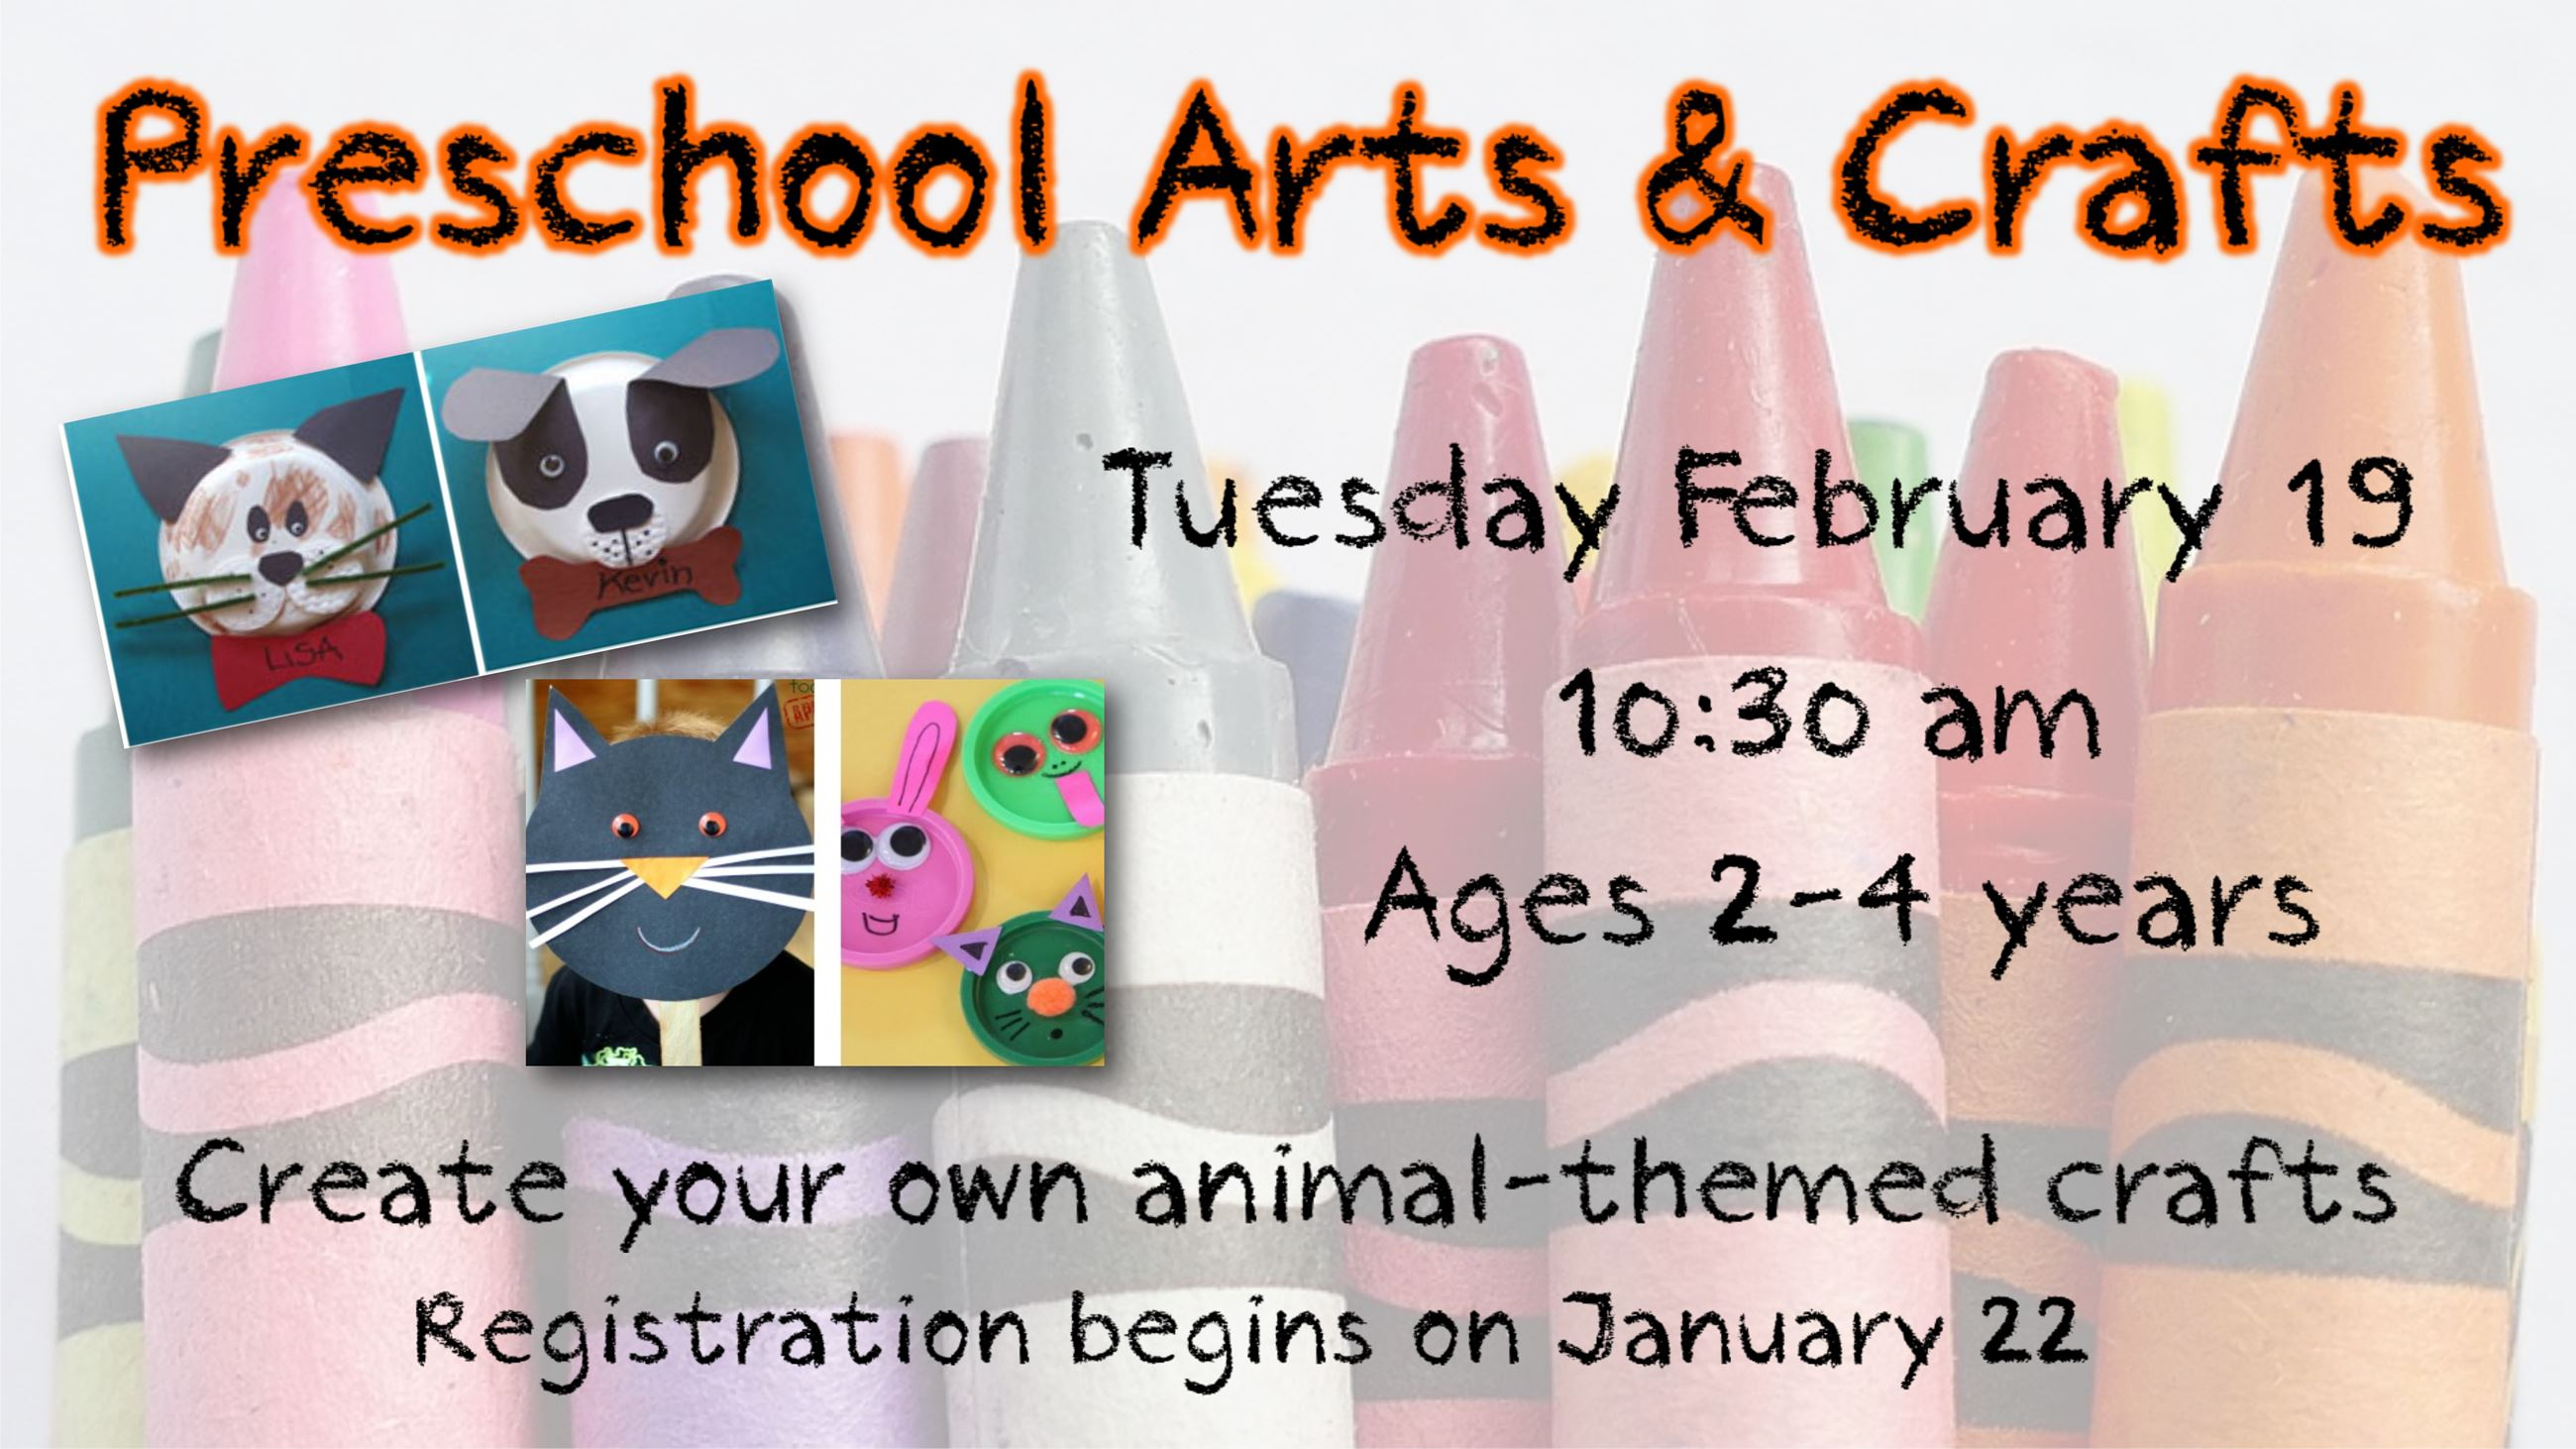 Presschool Arts and Crafts. February 19. 10:30 am. Ages 2 to 4. Registration begins January 22.